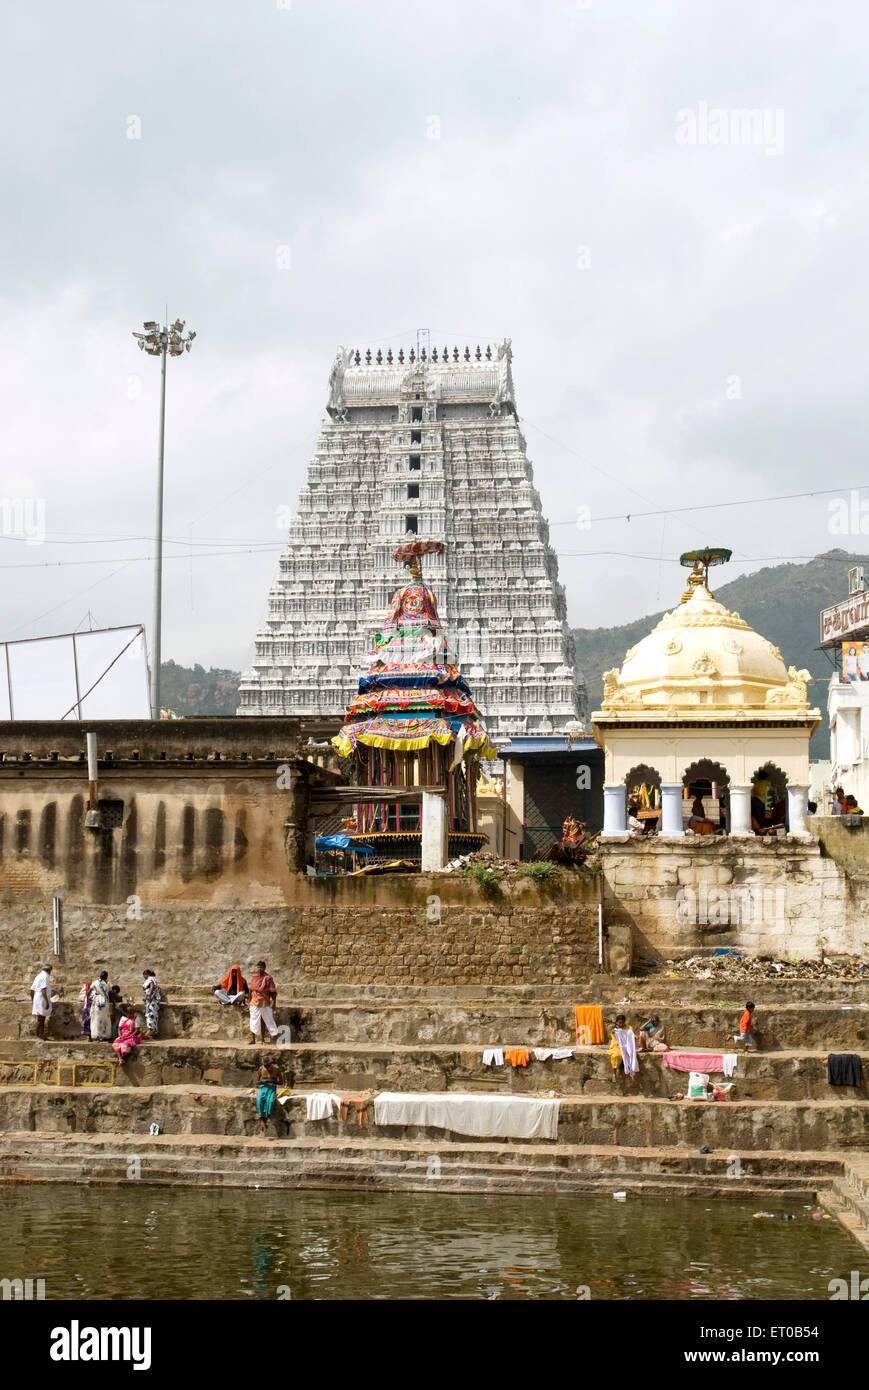 Arunachaleshwara temple Chola Period 9th 13th century in Thiruvannamalai ; Tamil Nadu ; India - Stock Image